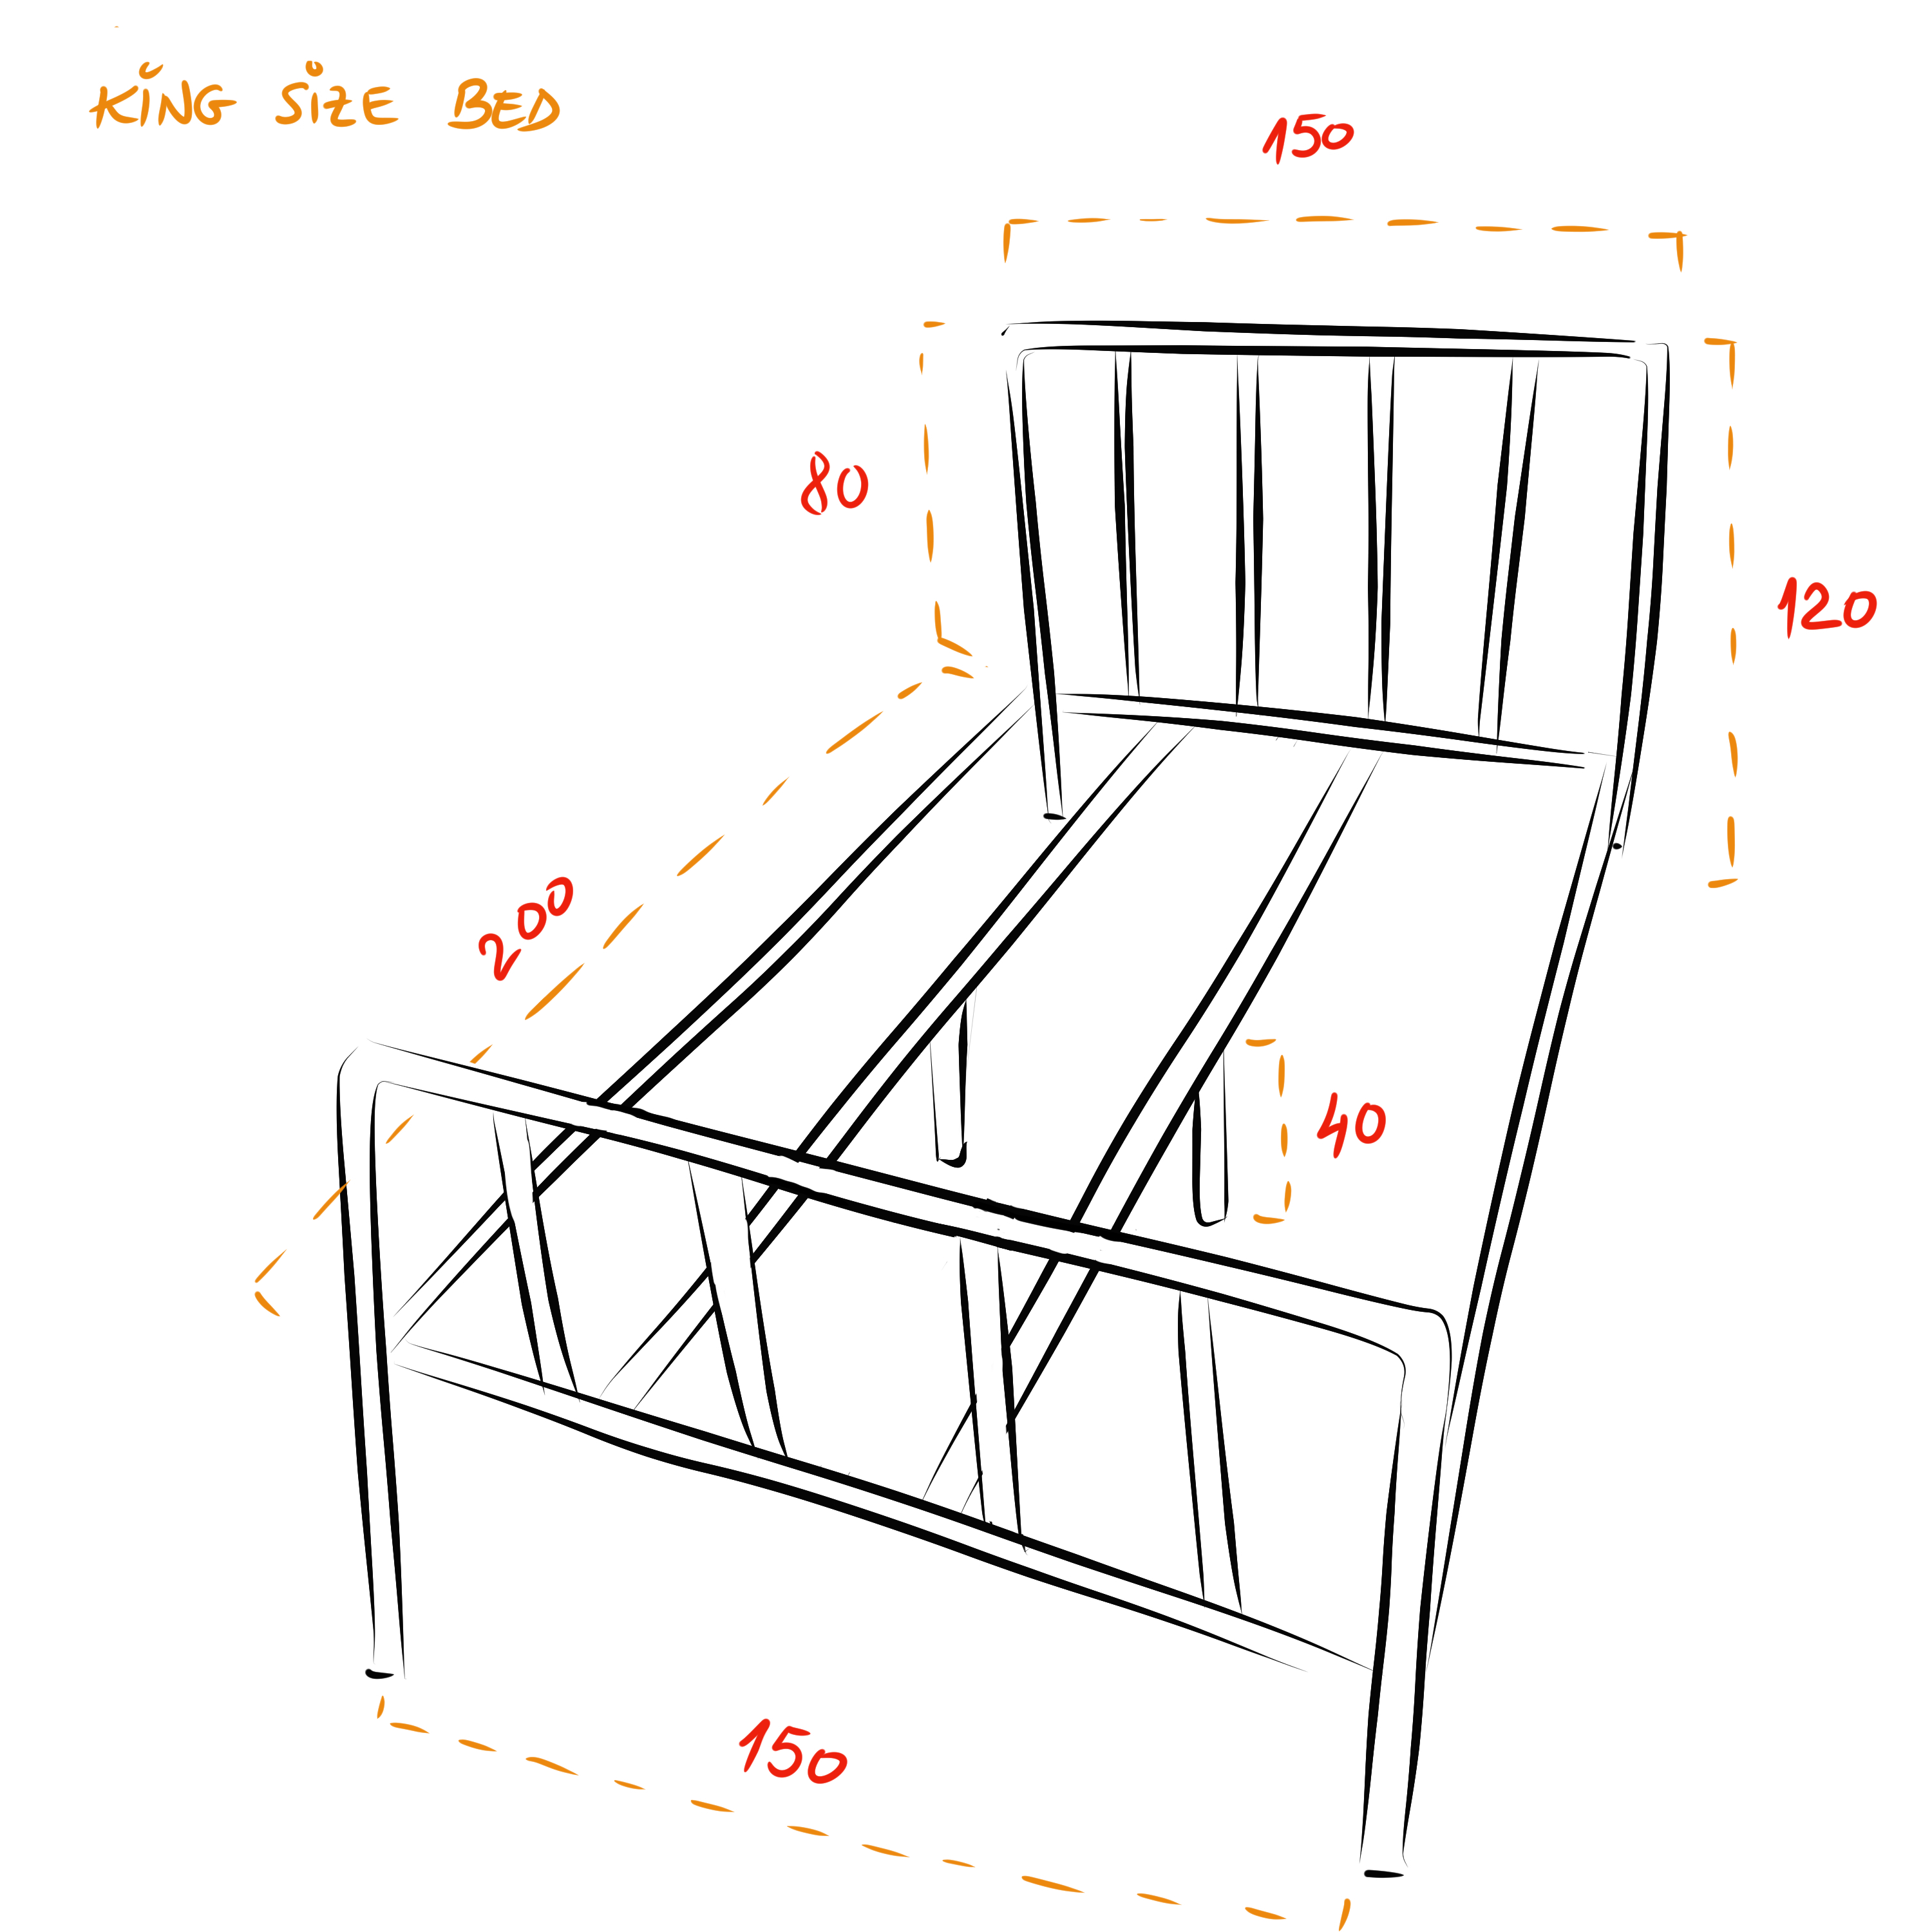 Camden industrial bed frame - King size